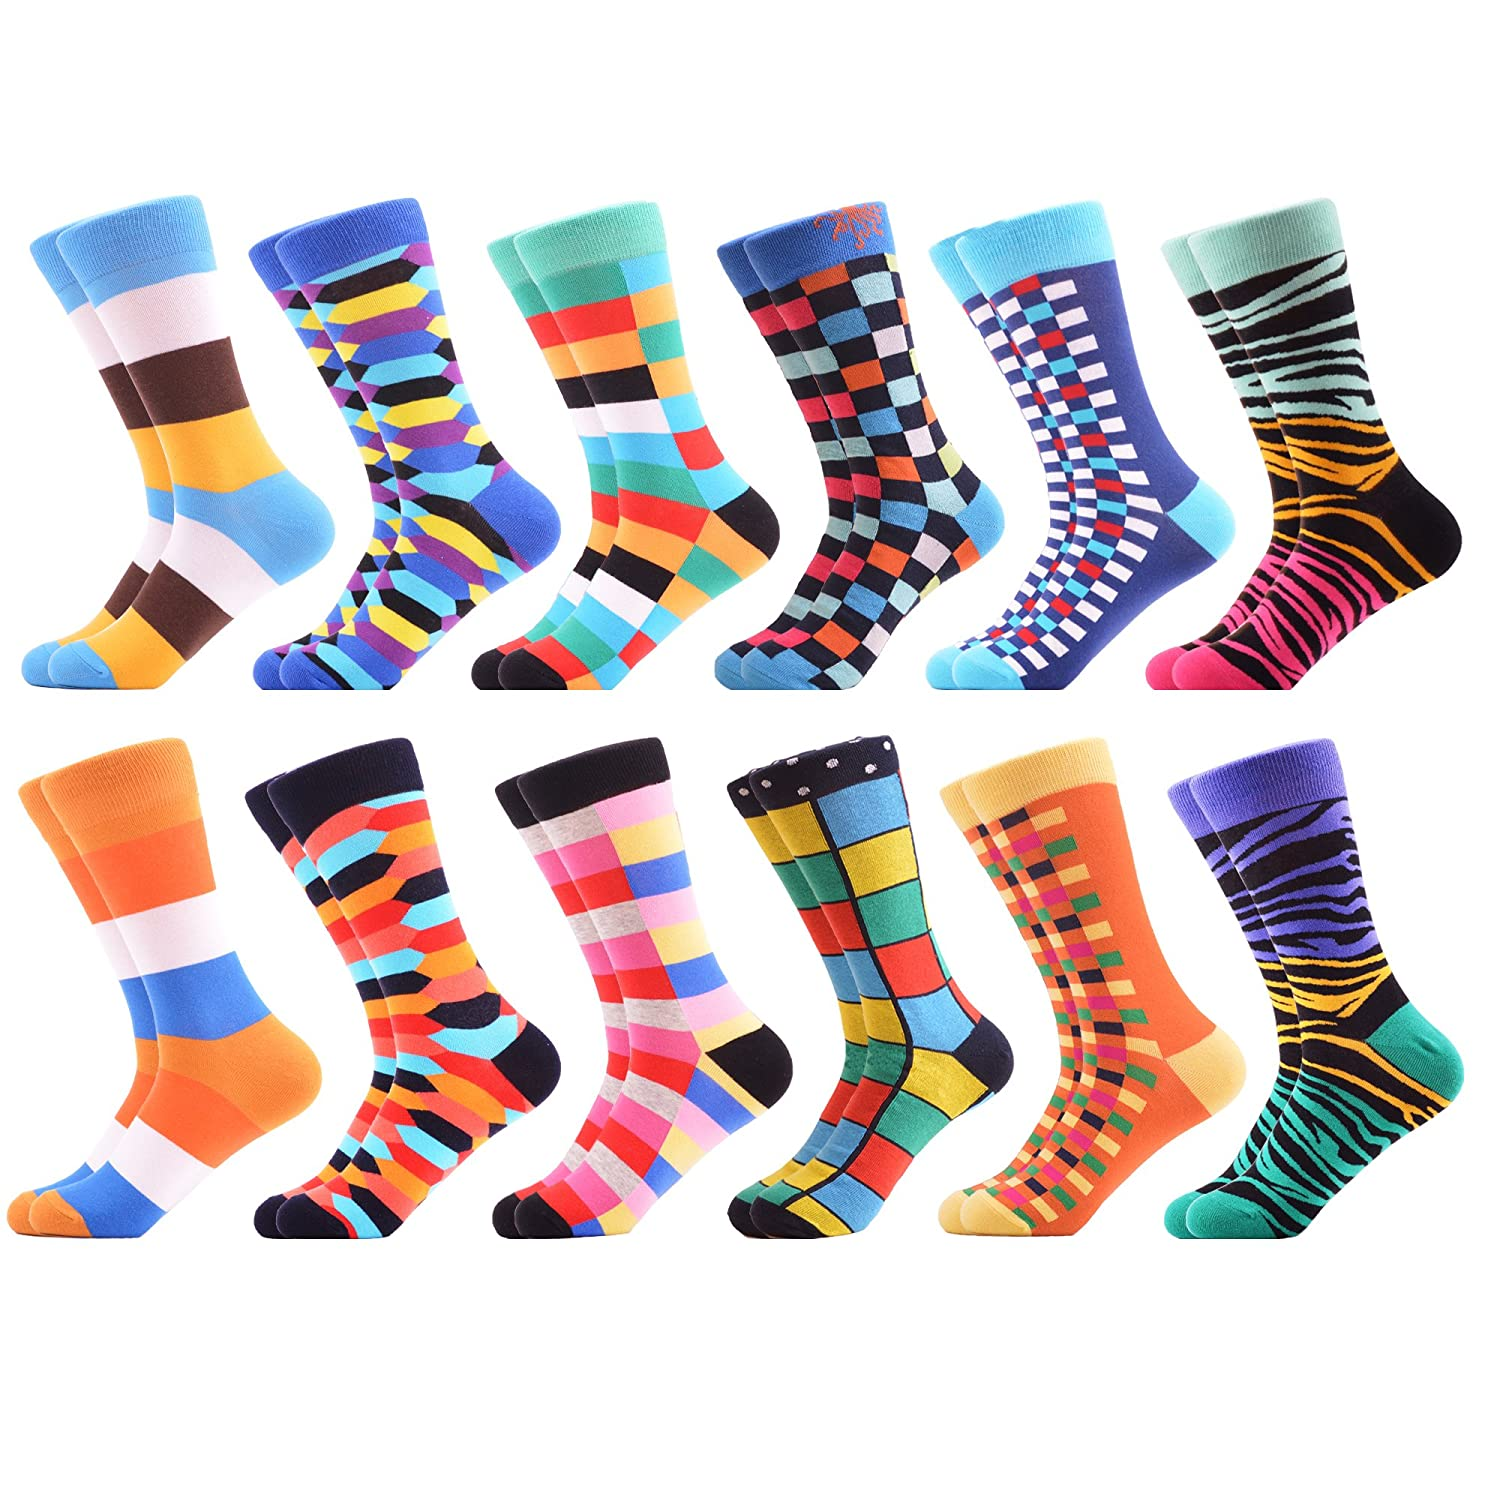 WeciBor Men's Dress Party Crazy Colorful Funny Cotton Crew Socks Packs 058-23